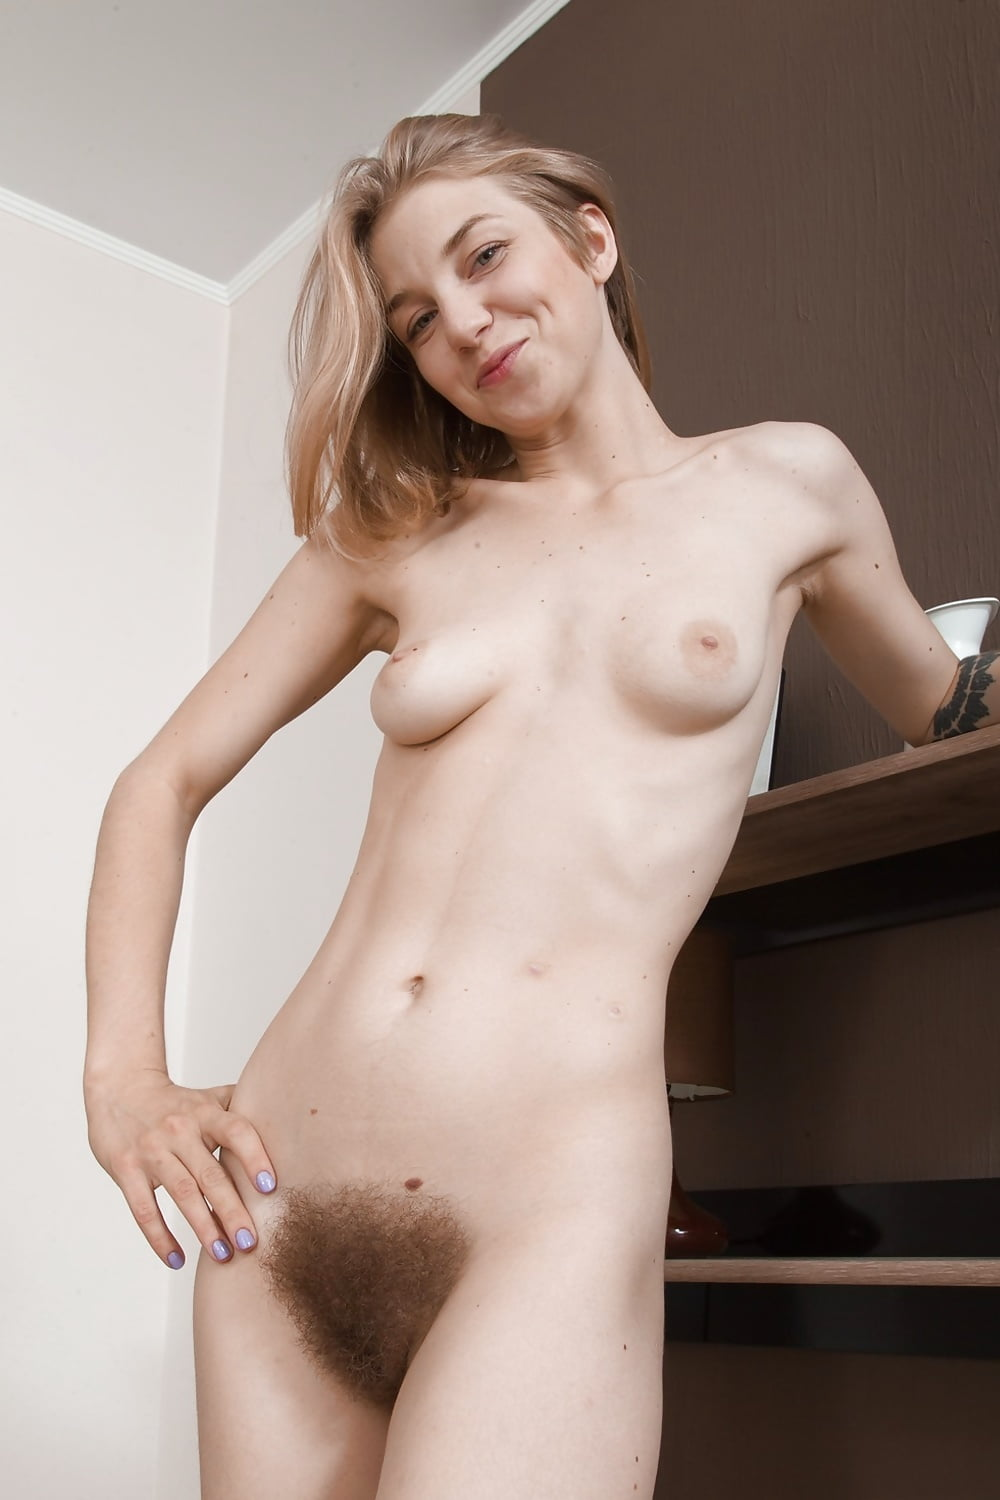 Virgin aged girl nude — 12